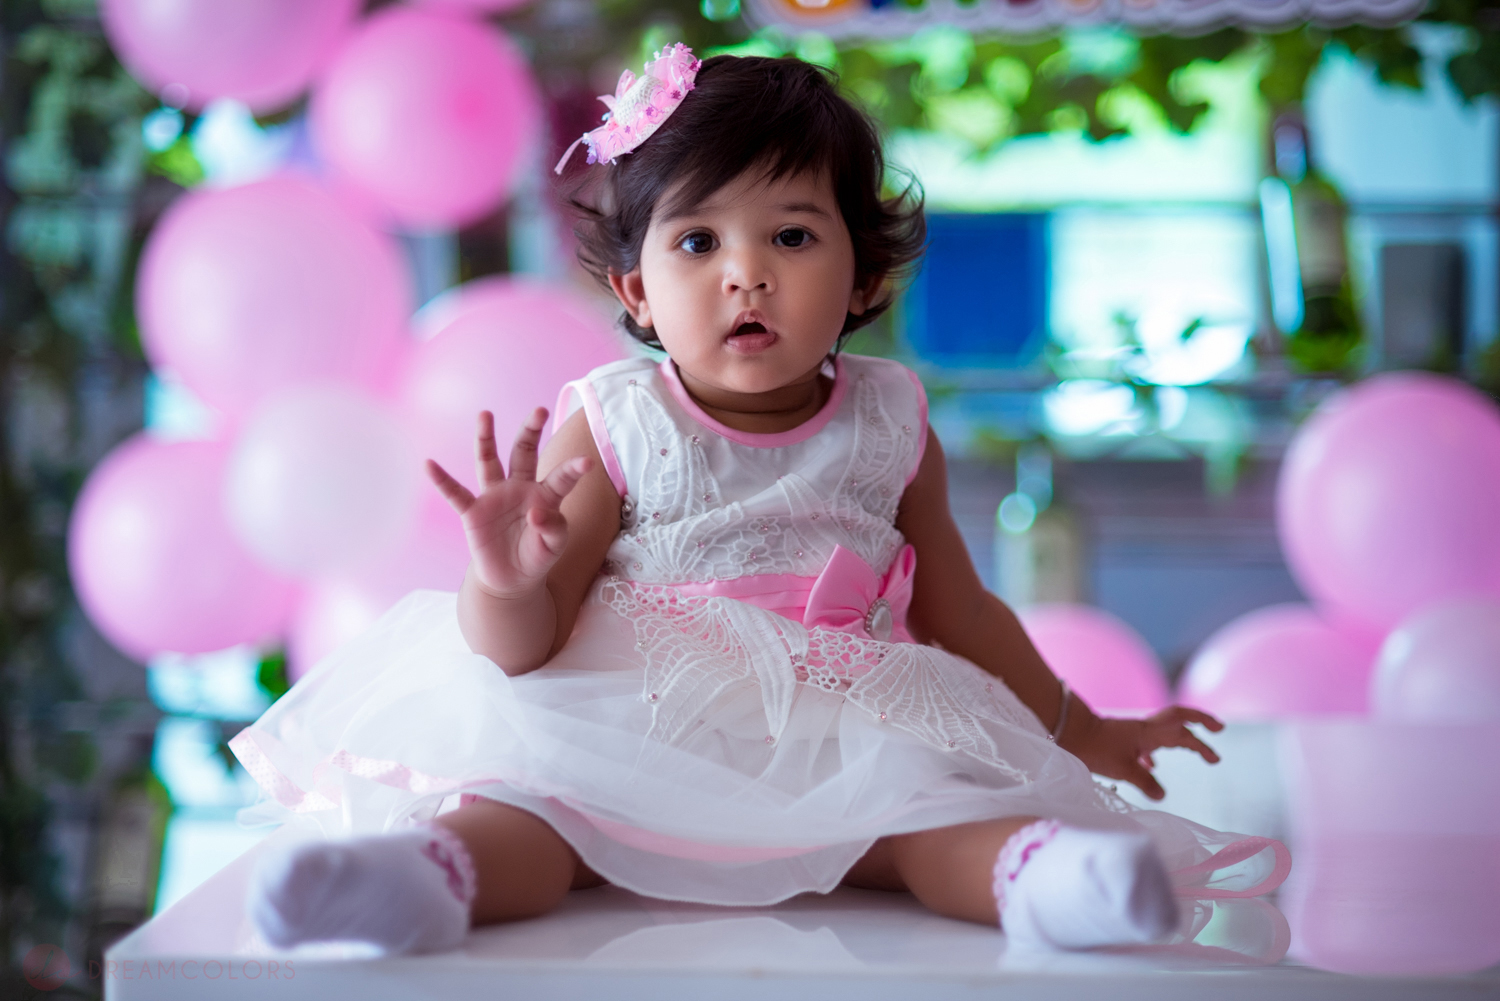 Kids photography Dreamcolors photography bangalore based